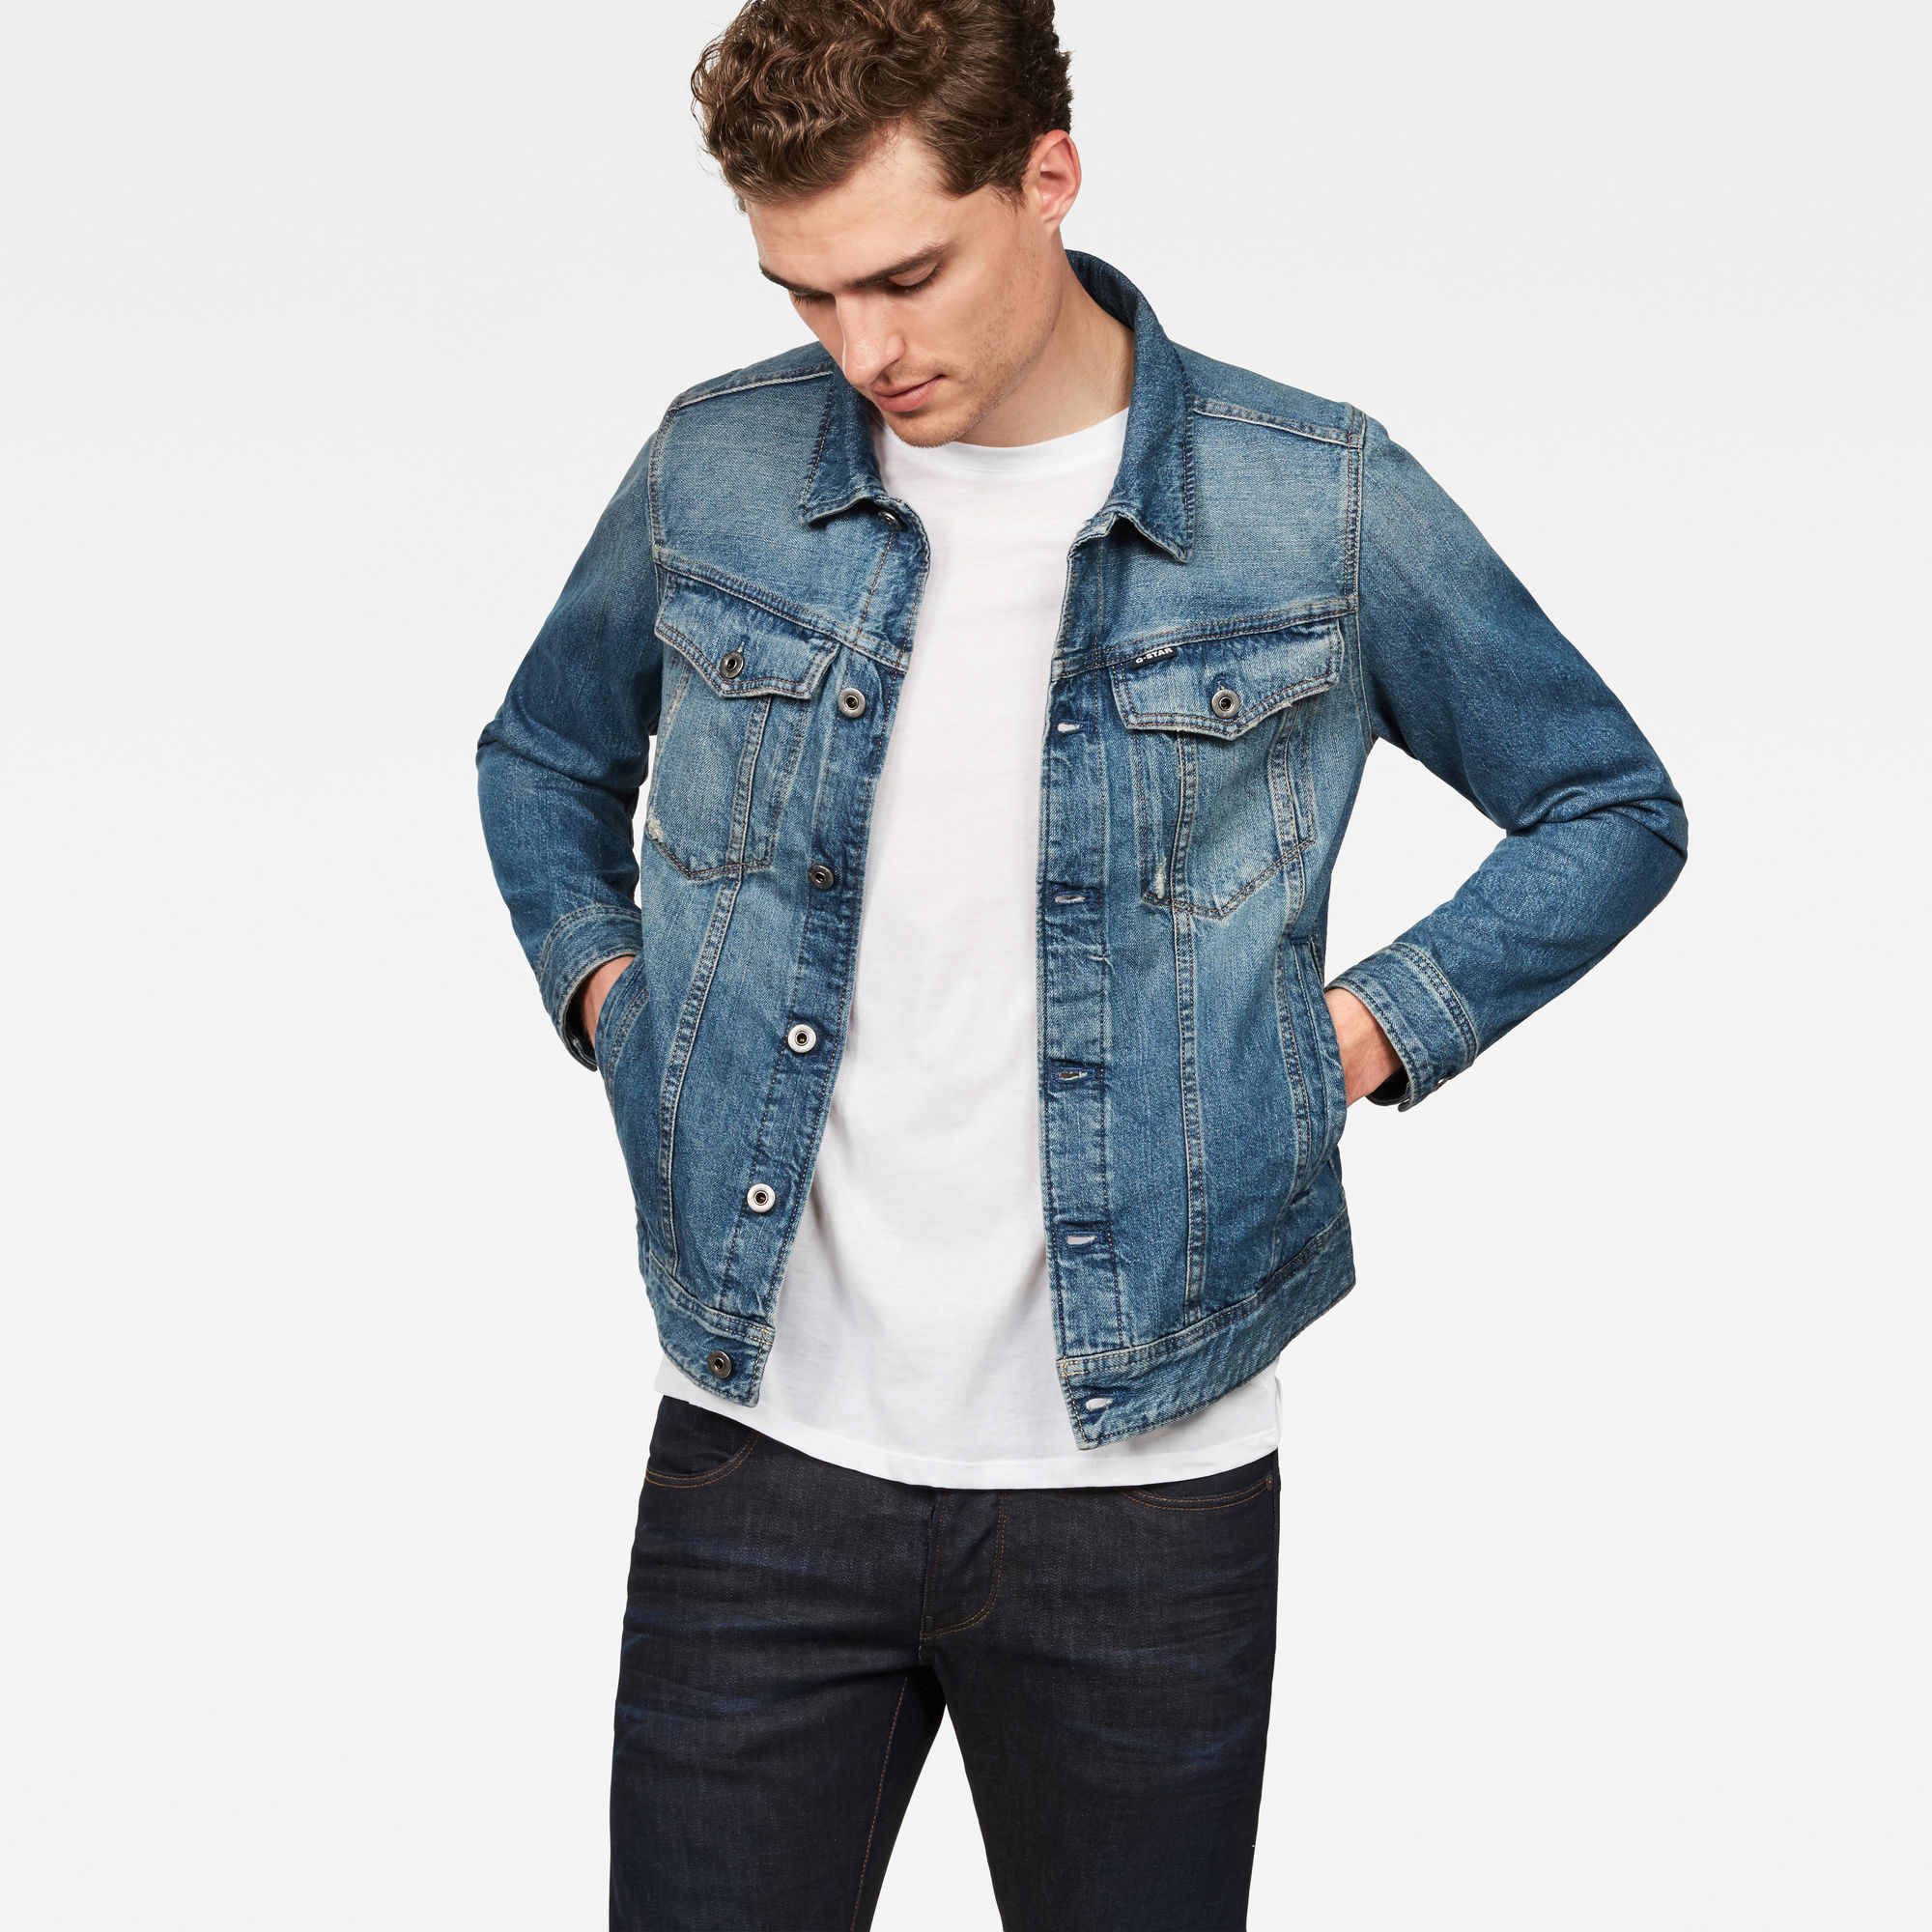 Image of G Star Raw 3301 Deconstructed Slim Jacket